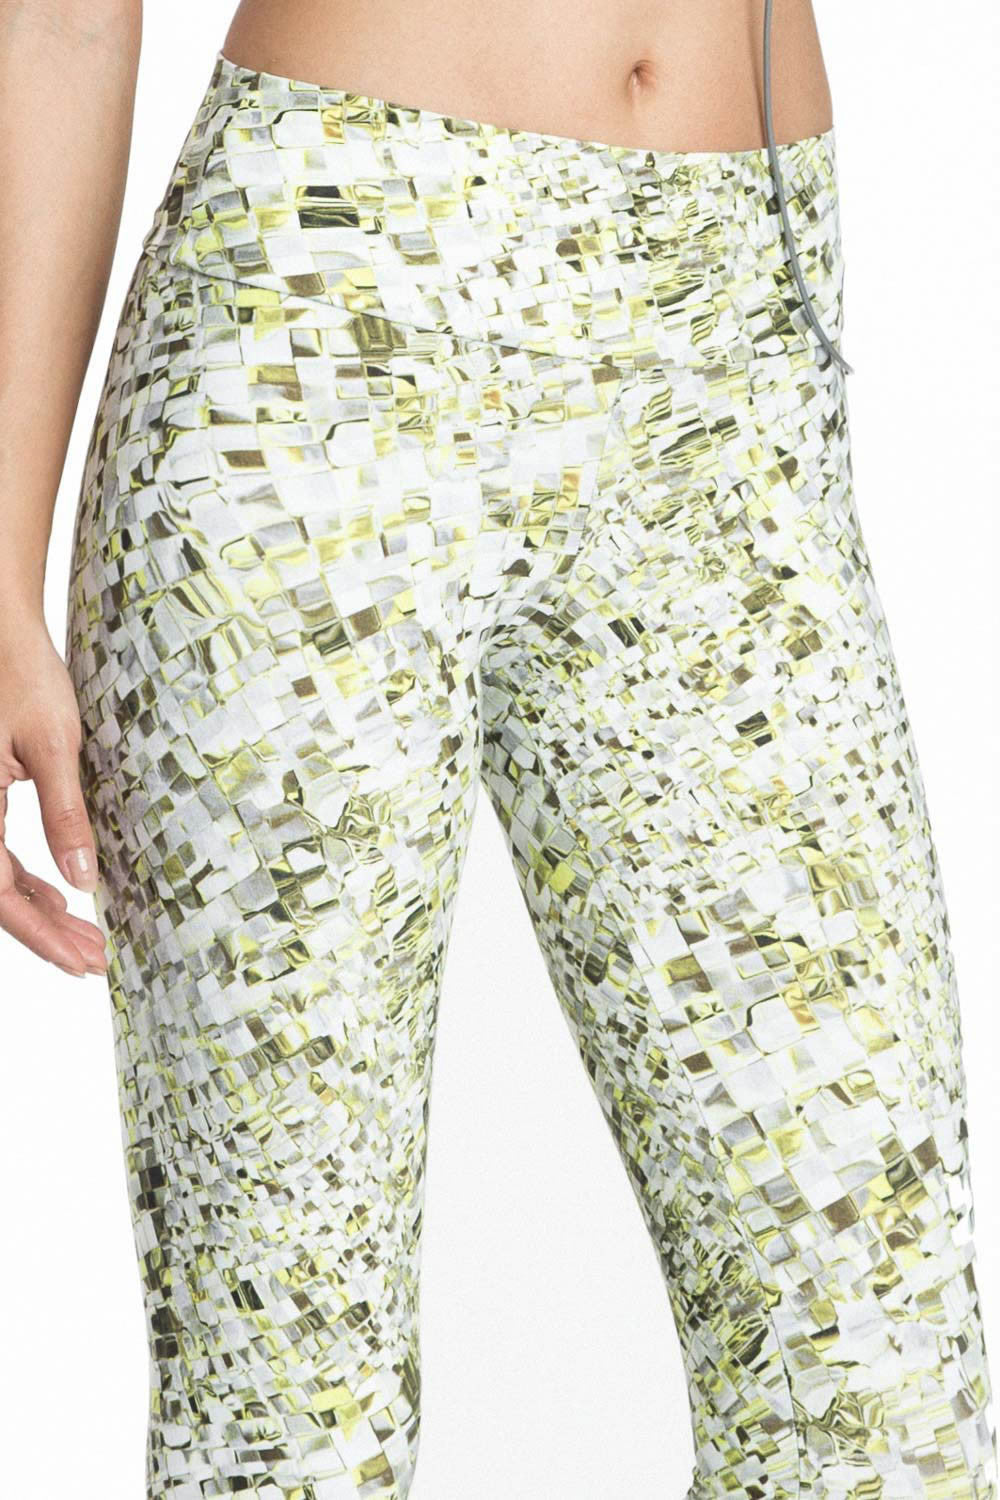 Clouds Gym Mold Legging